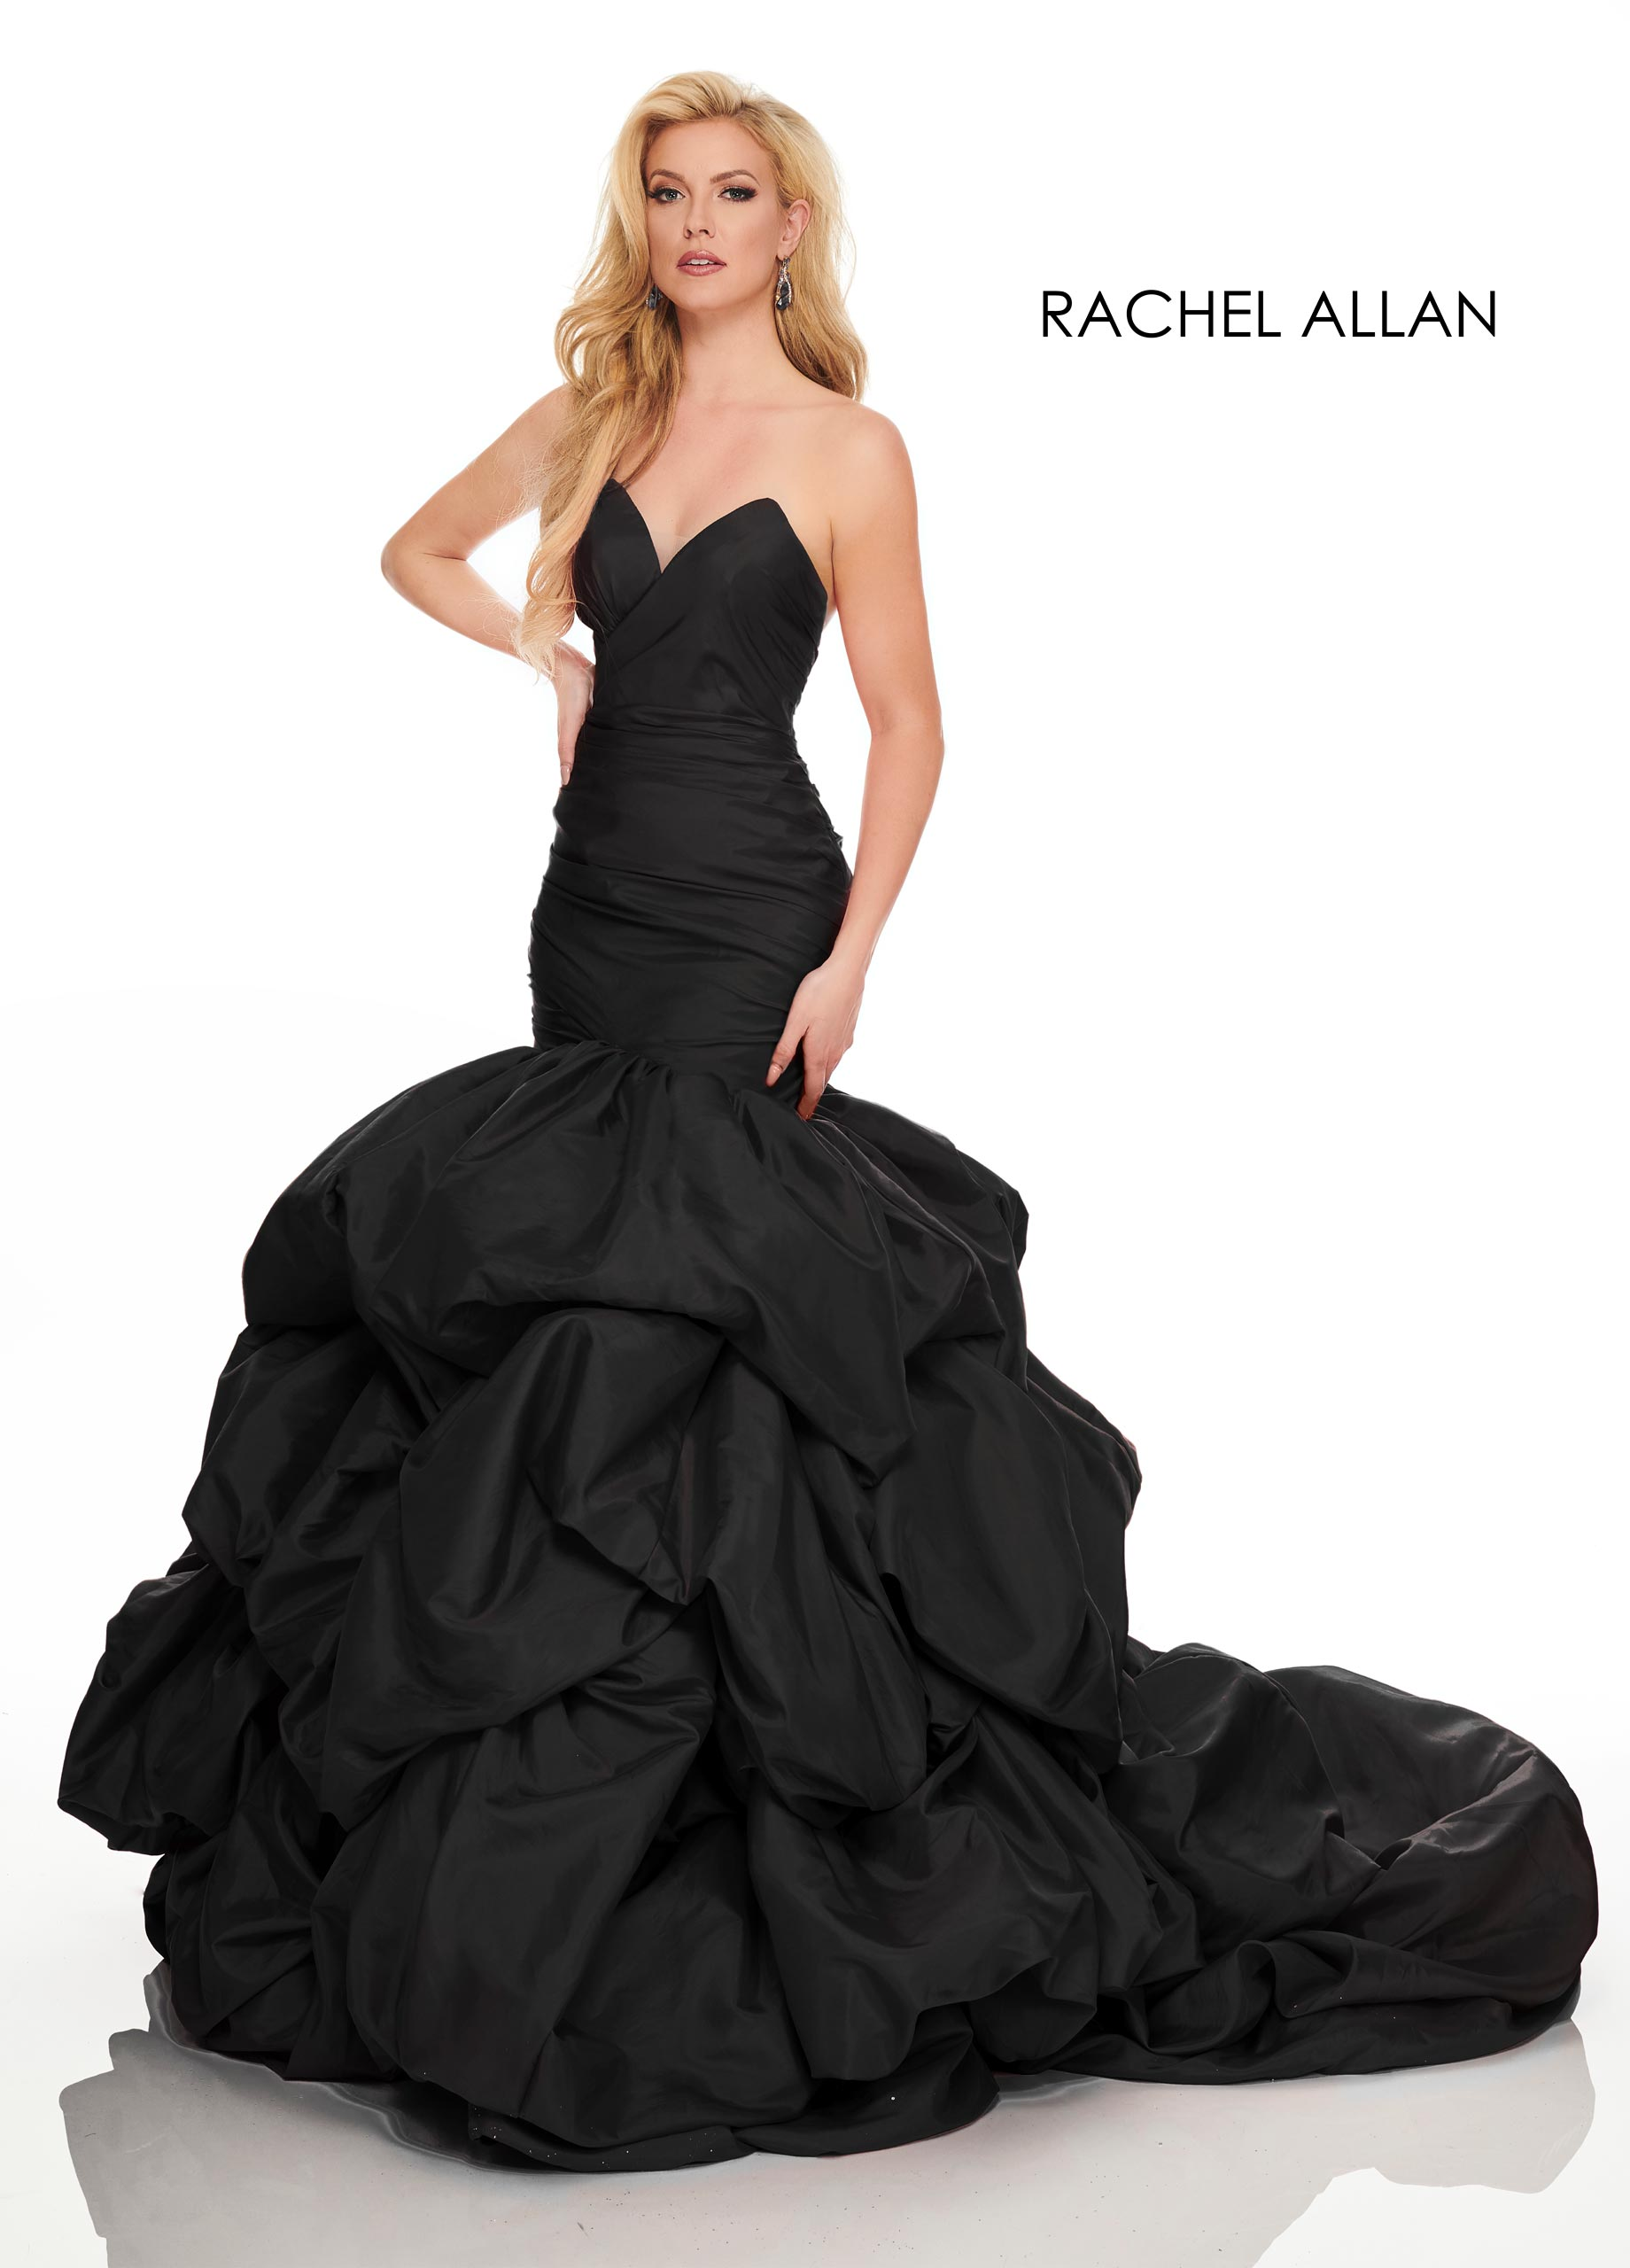 Strappy Drop Waist Couture Dresses in Black Color